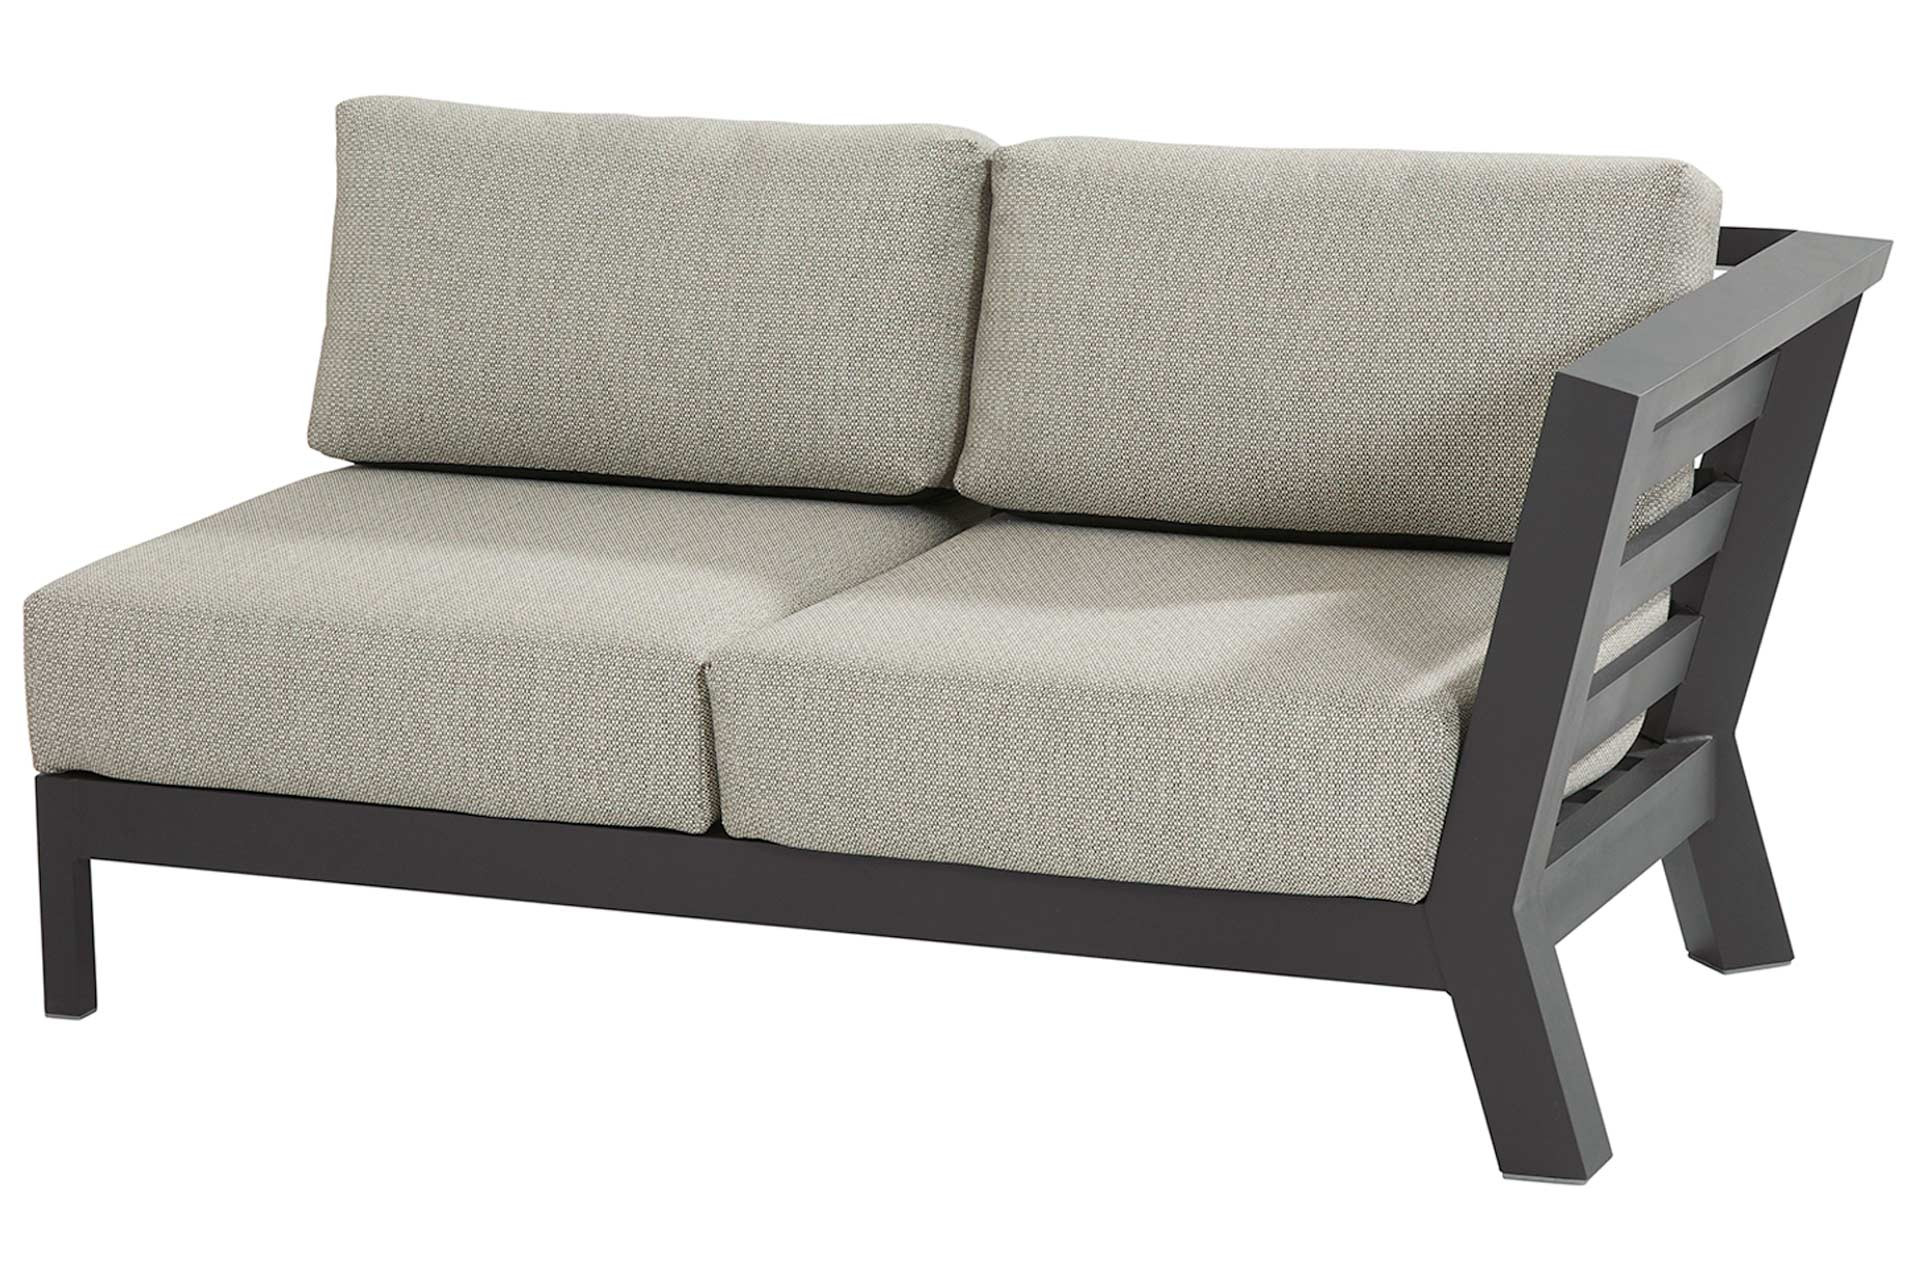 Meteoro modular 2 seater bench L arm with 4 cushions Anthracite